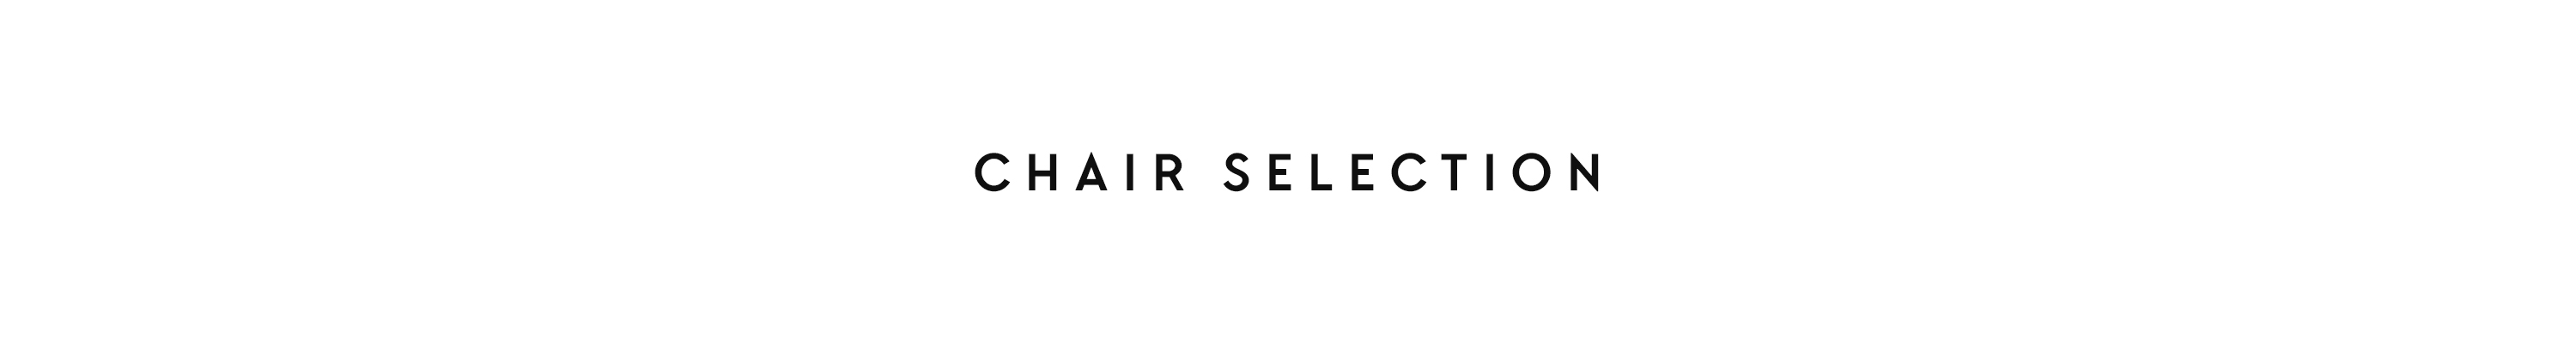 chair selection